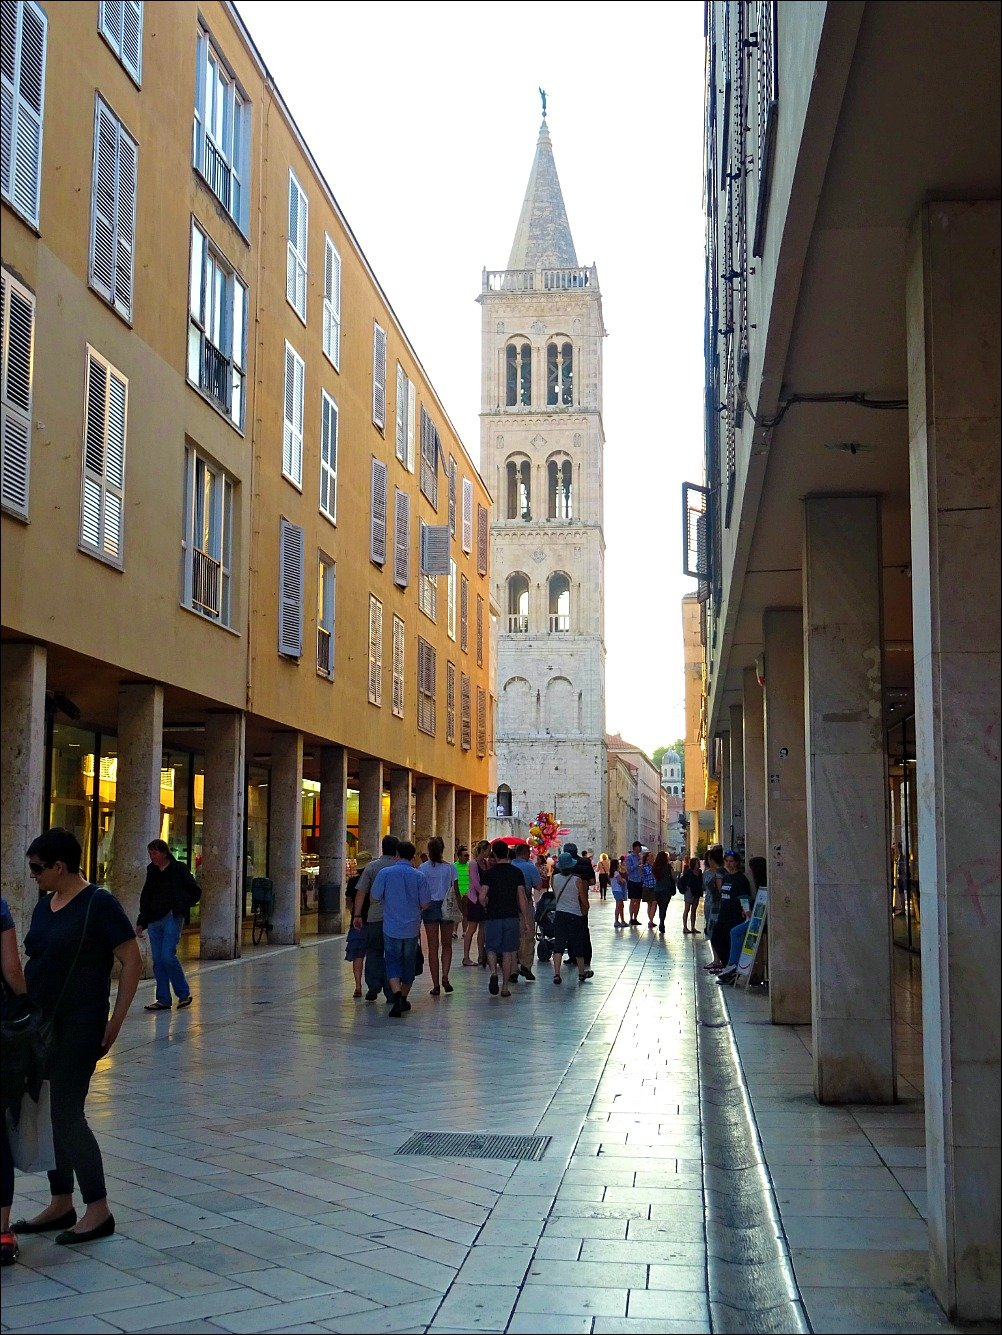 Zadar mix of buildings